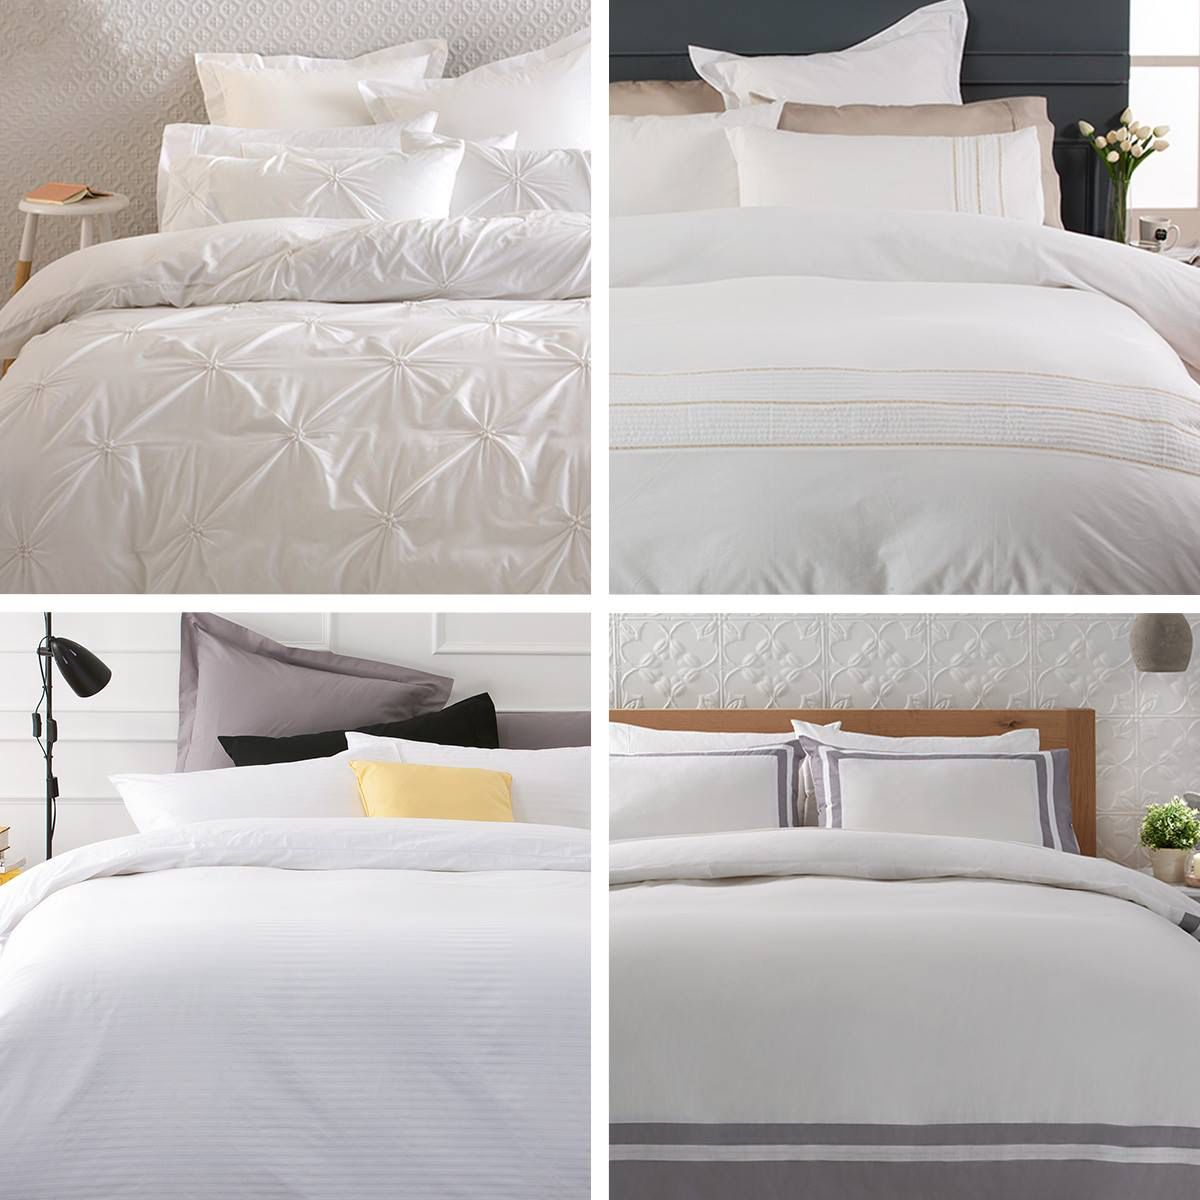 bedding from kmart | bedroom dressers, kmart bedding, bed